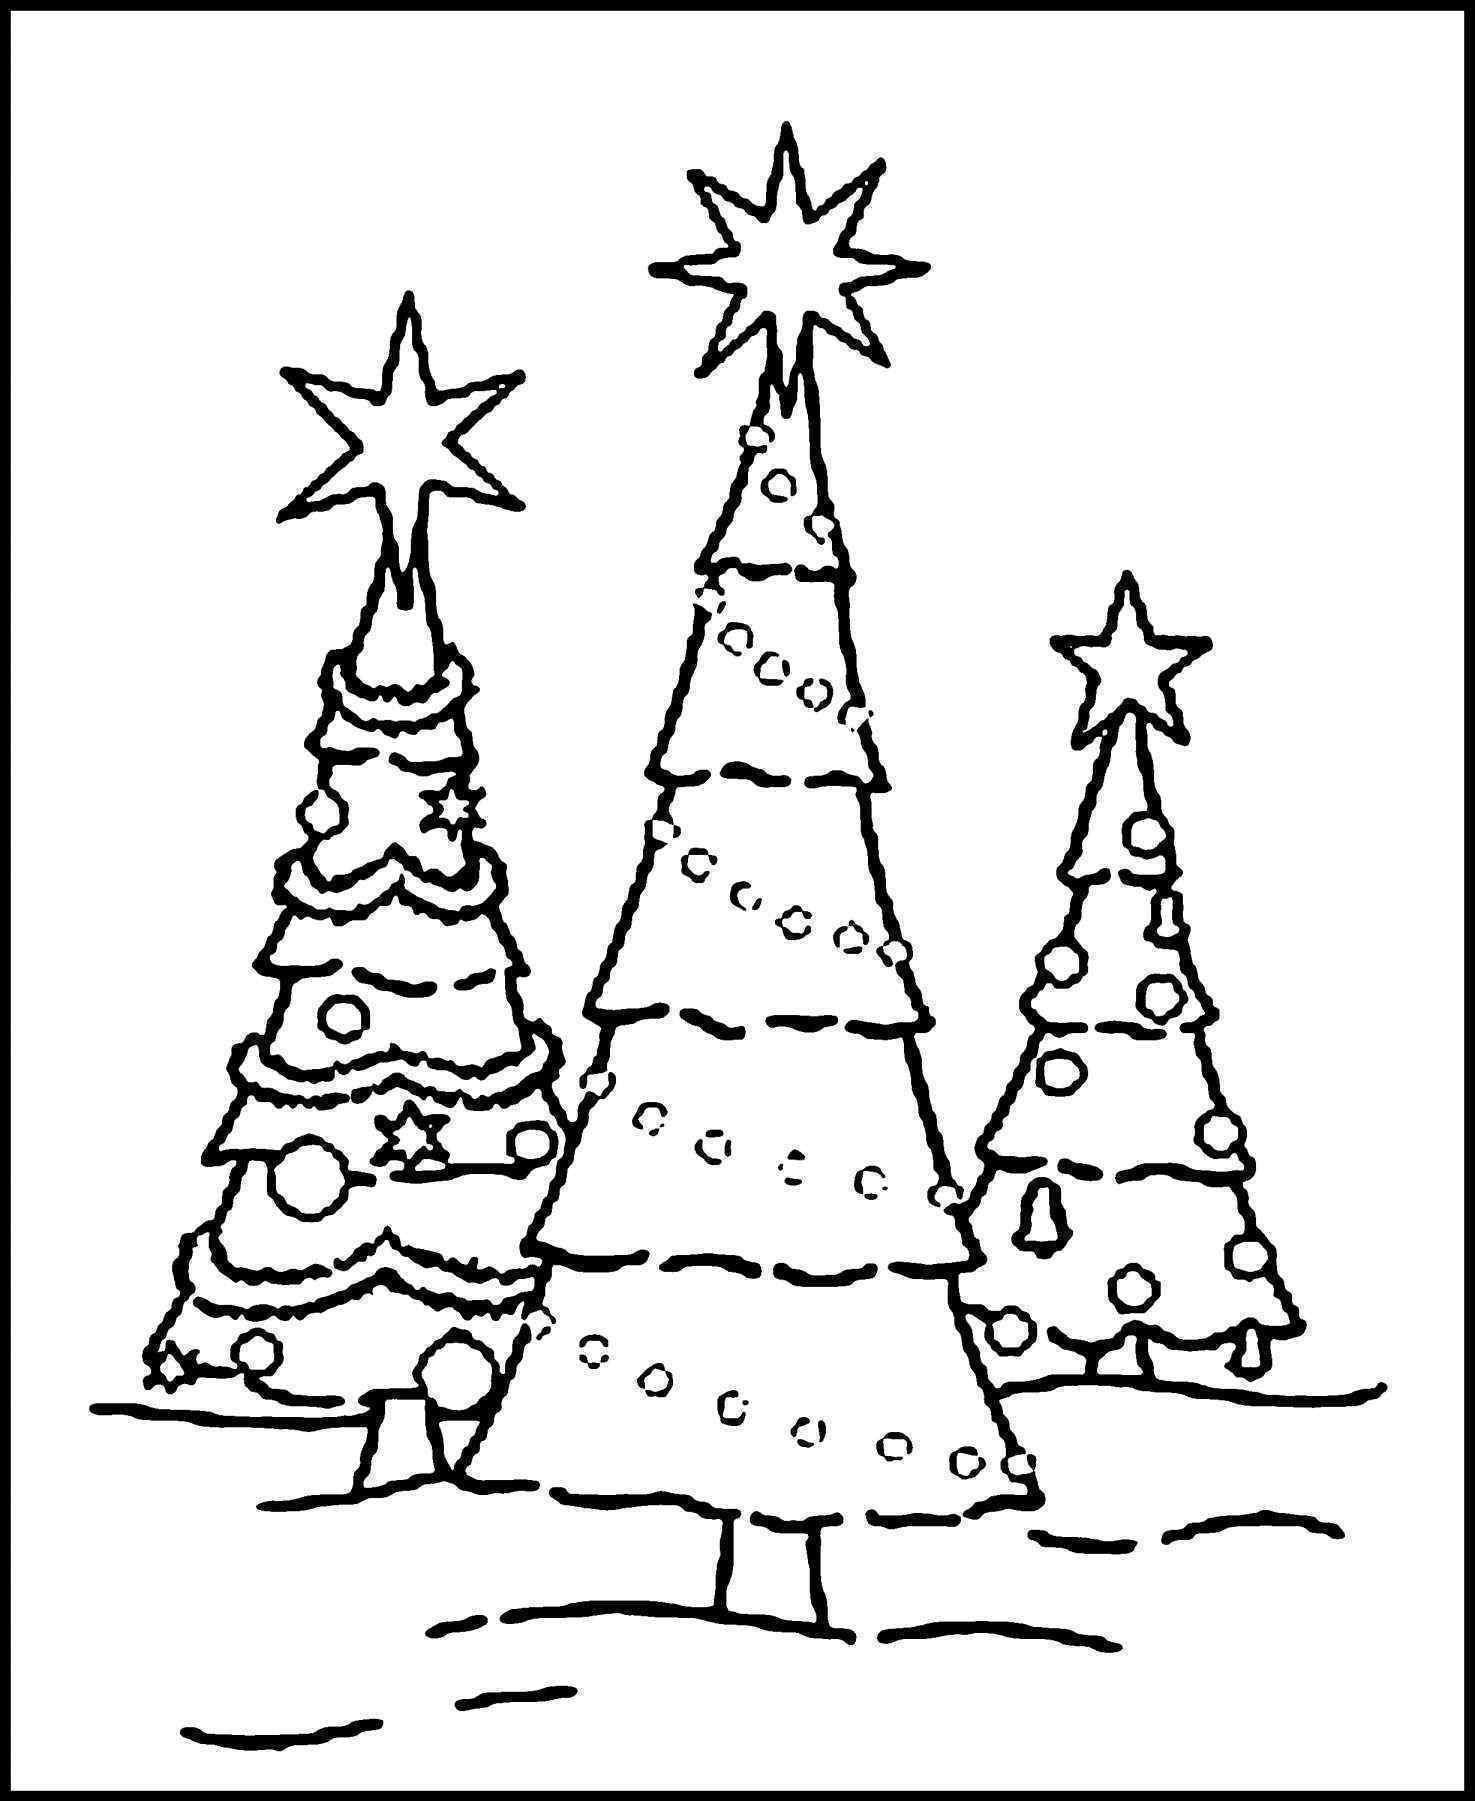 10+ Inspirational Christmas Decoration Clipart Black and White Ideas.